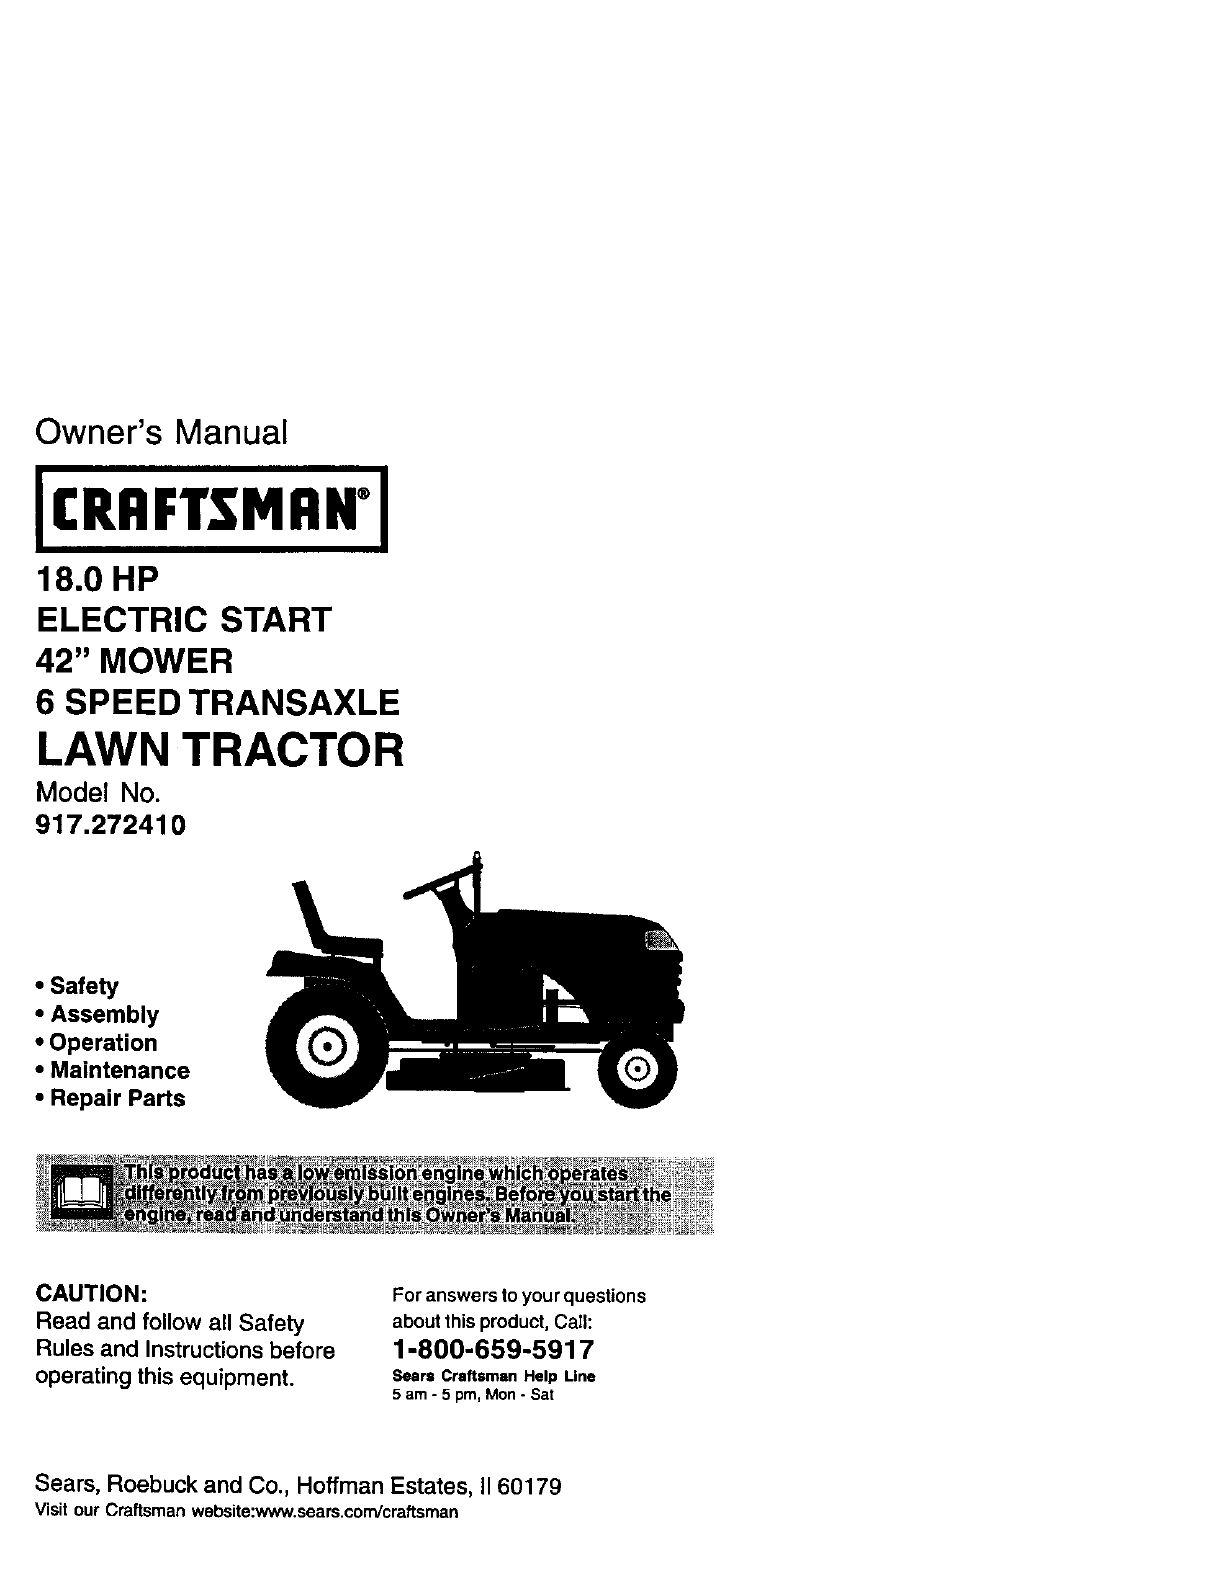 Craftsman Lt1000 Mower Manual : Craftsman lawn mower user guide manualsonline